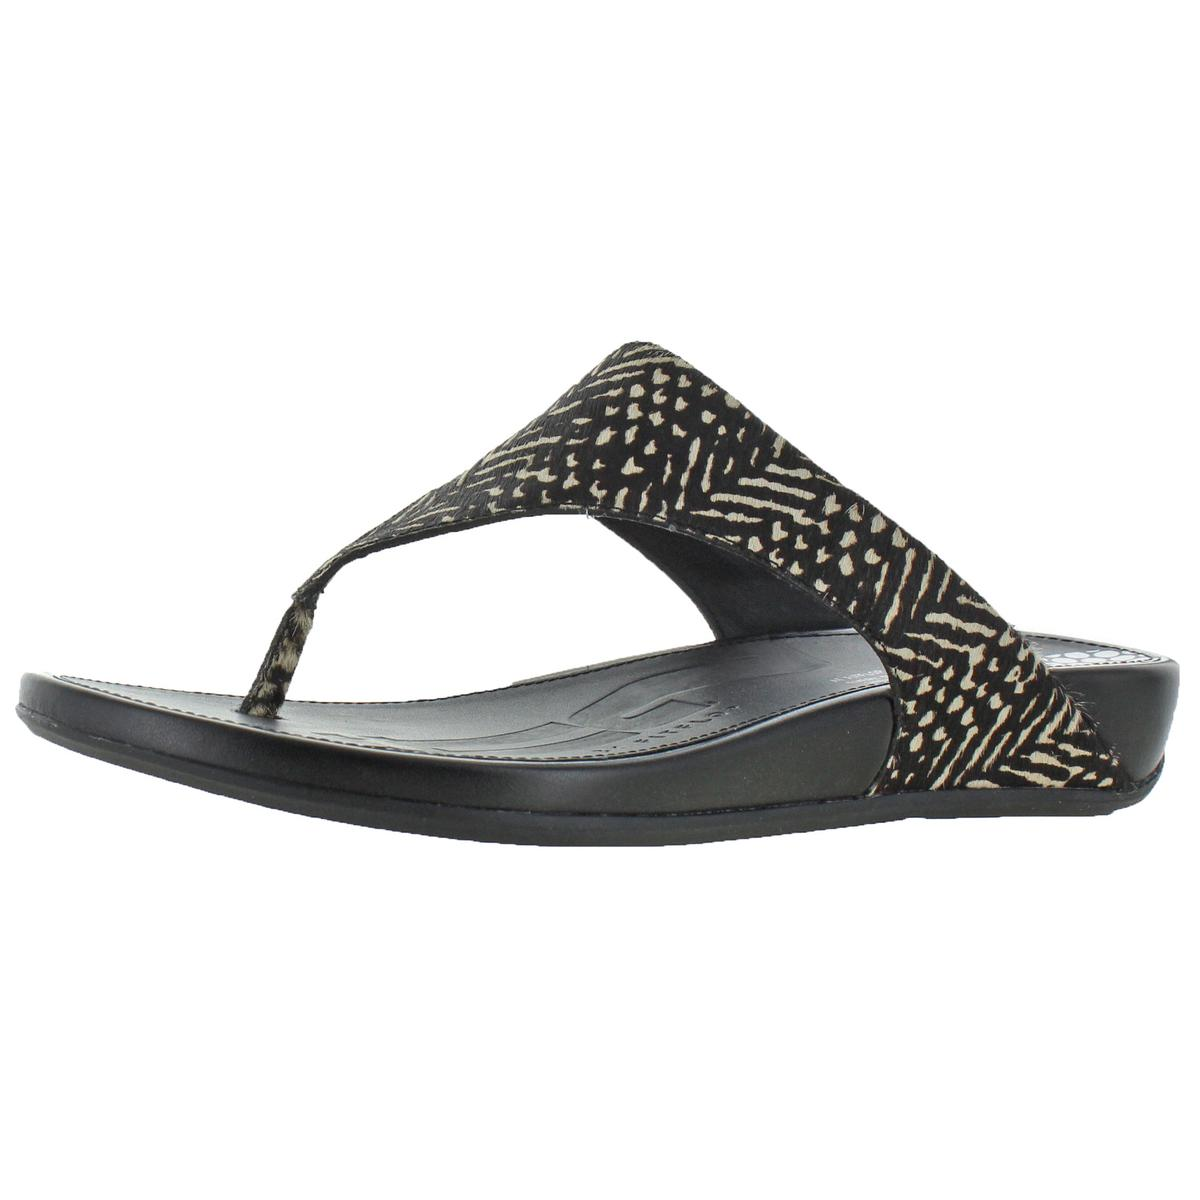 68f81965c Details about Fitflop Womens Banda Brown Leather Thong Sandals Wedges 8  Medium (B